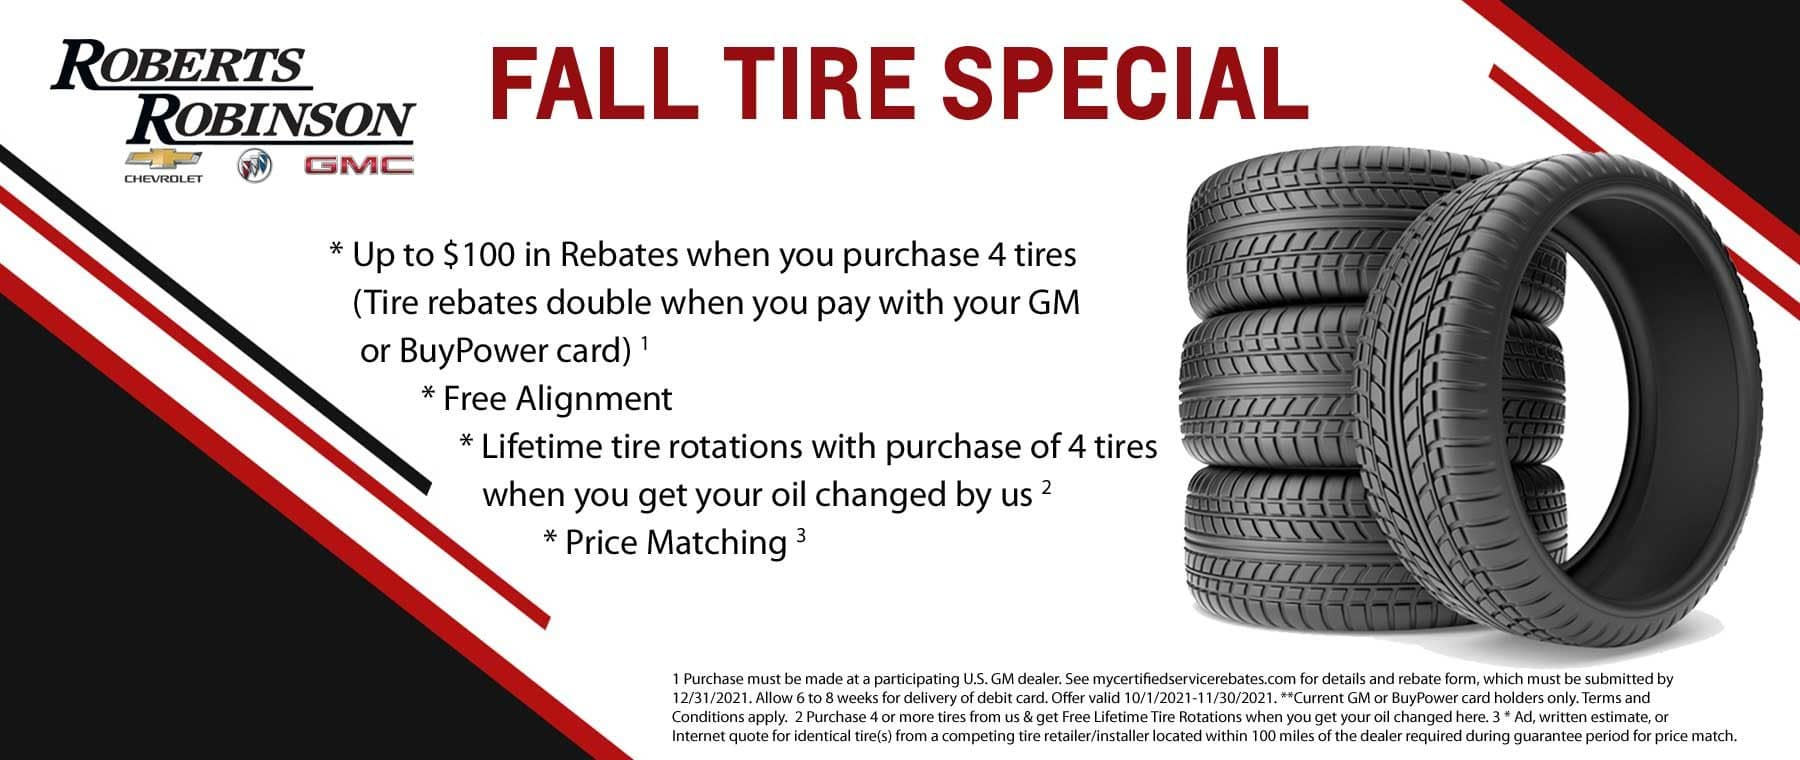 Fall Tire Special Rebates and More!